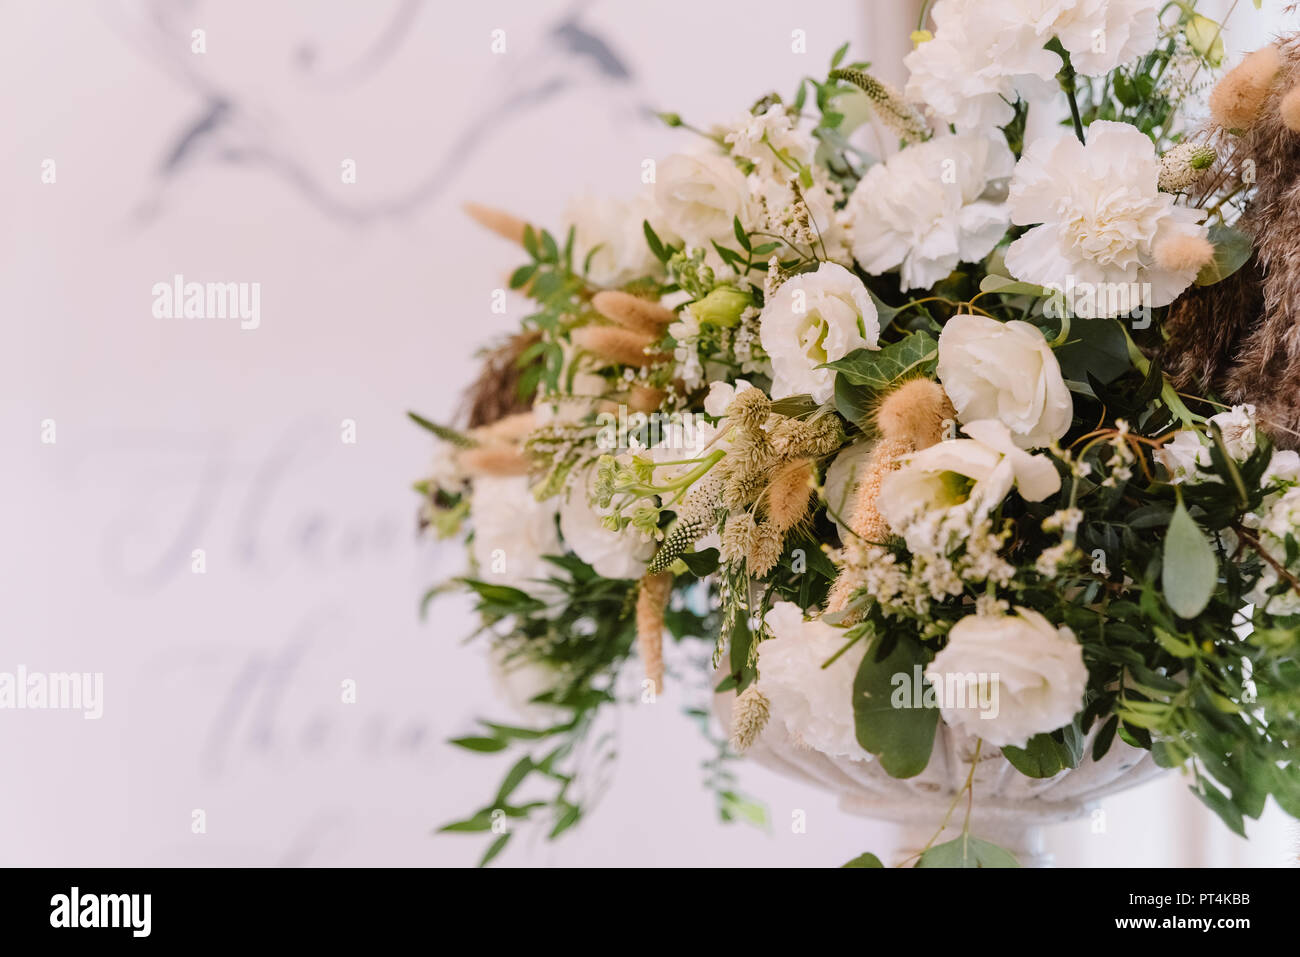 Decoration of a stylish beautiful wedding with fresh flowers. Wedding presidium - Stock Image